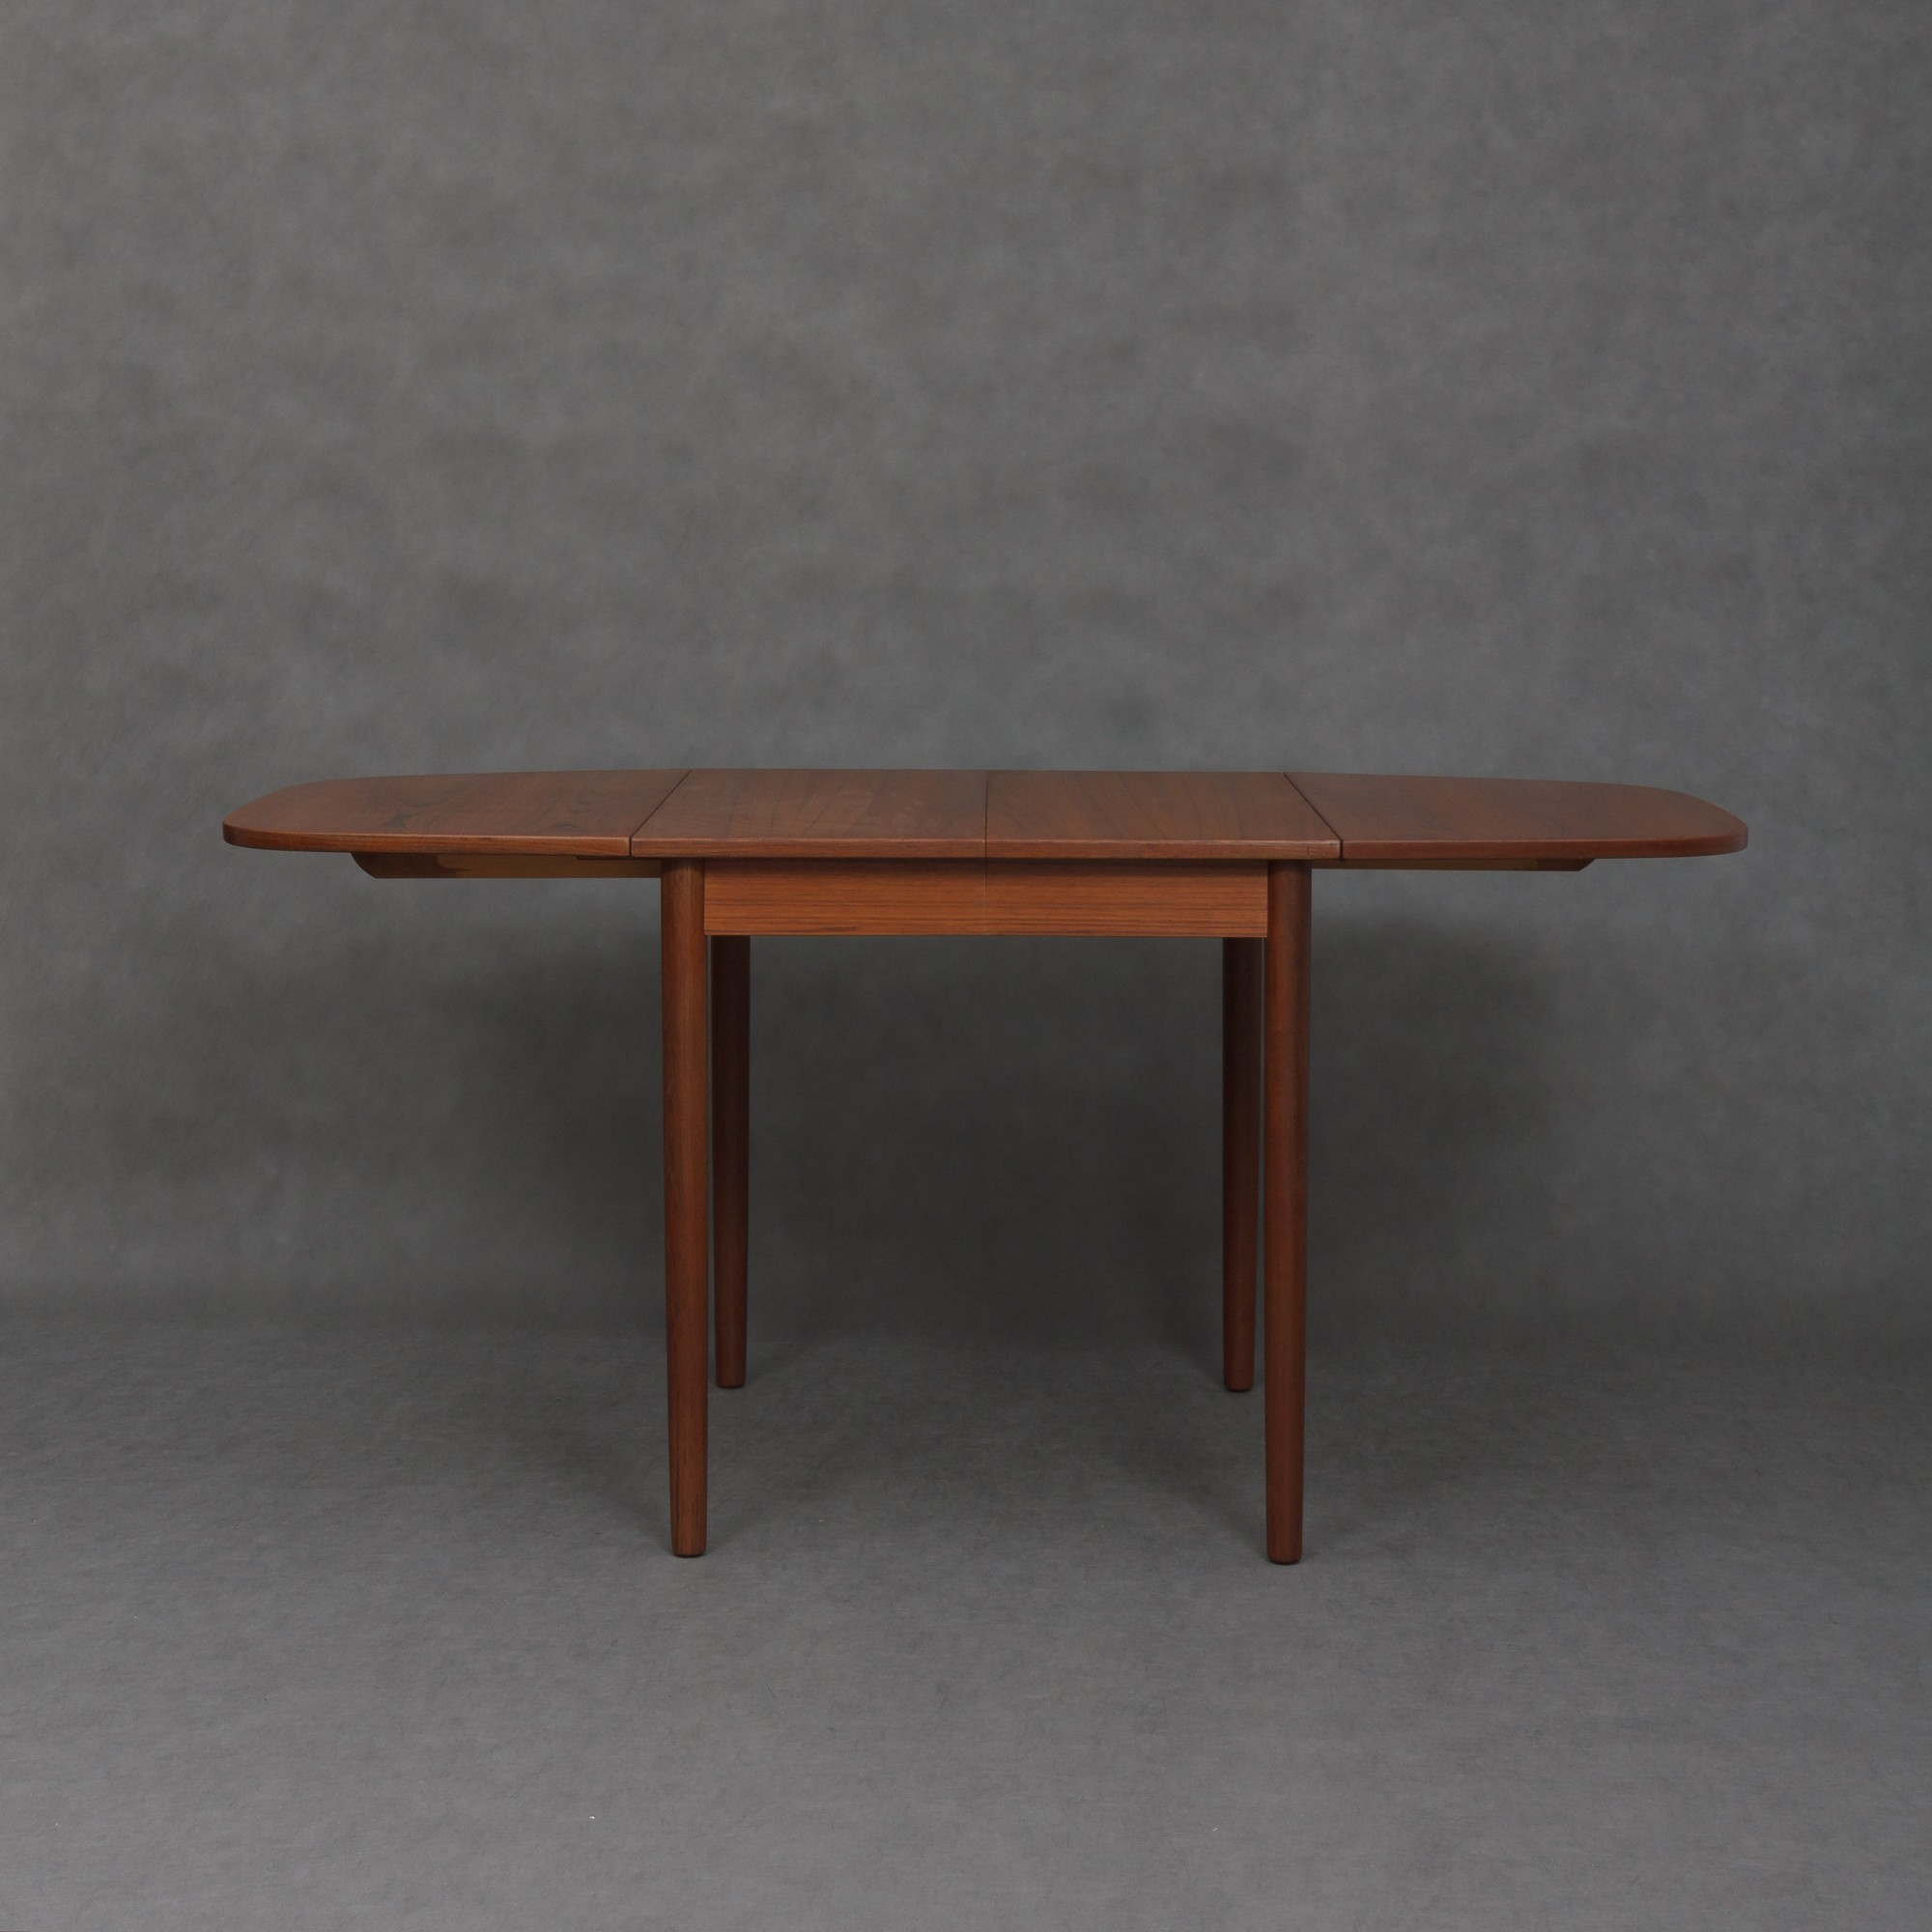 Vintage teak extendable table by C J Rosengaarden 1960s Design